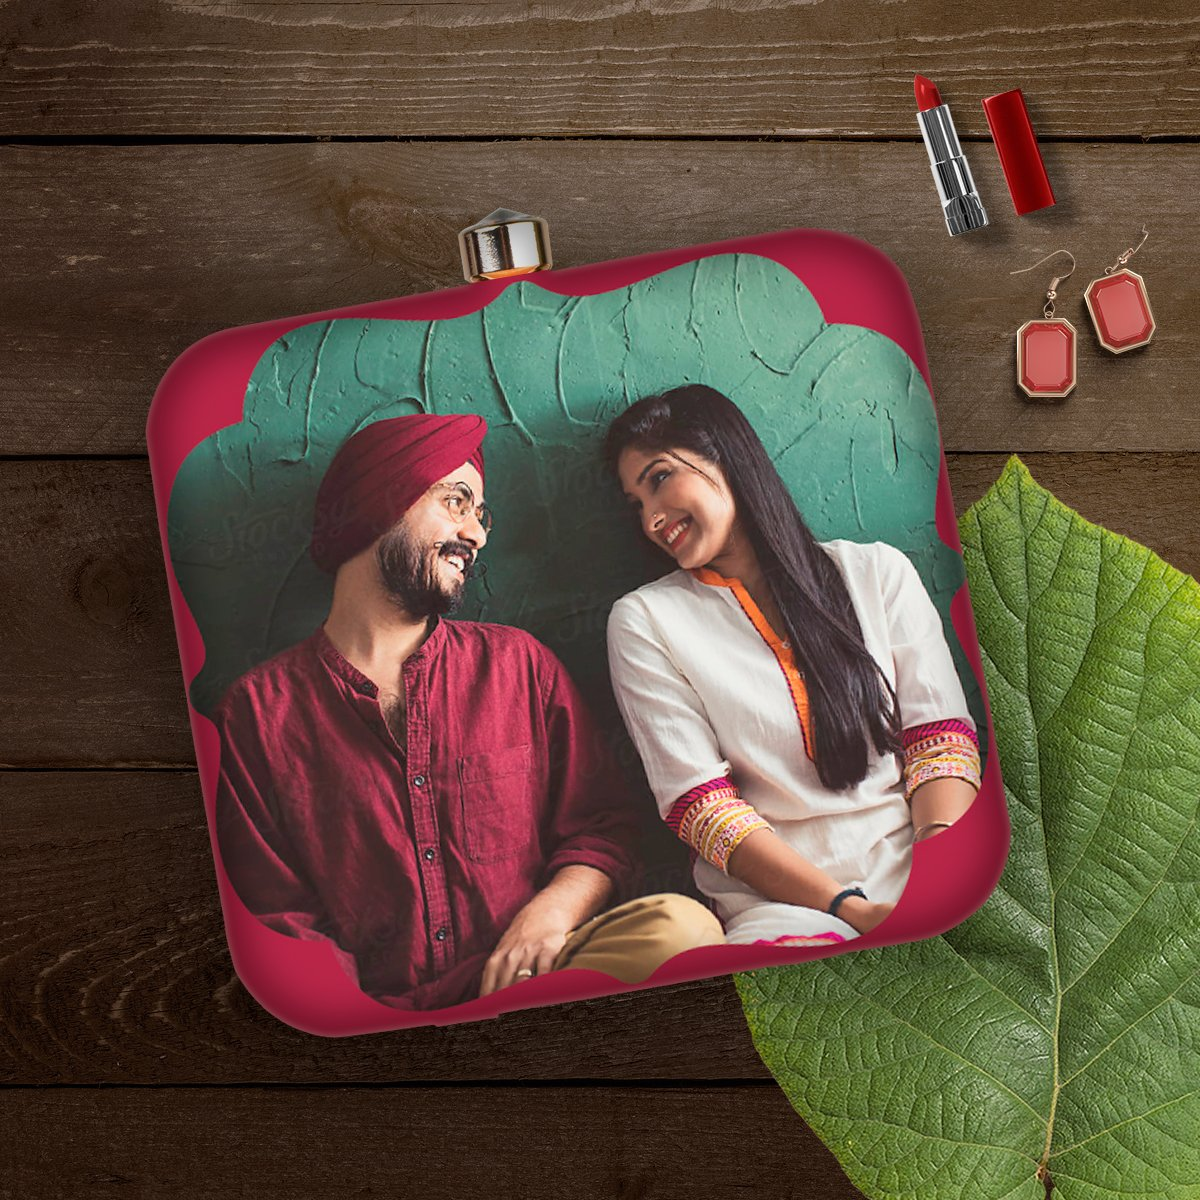 Cherish your beautiful memories with these amazing photo customizable box clutches. An ideal gift for anniversaries, birthdays & all those special days.